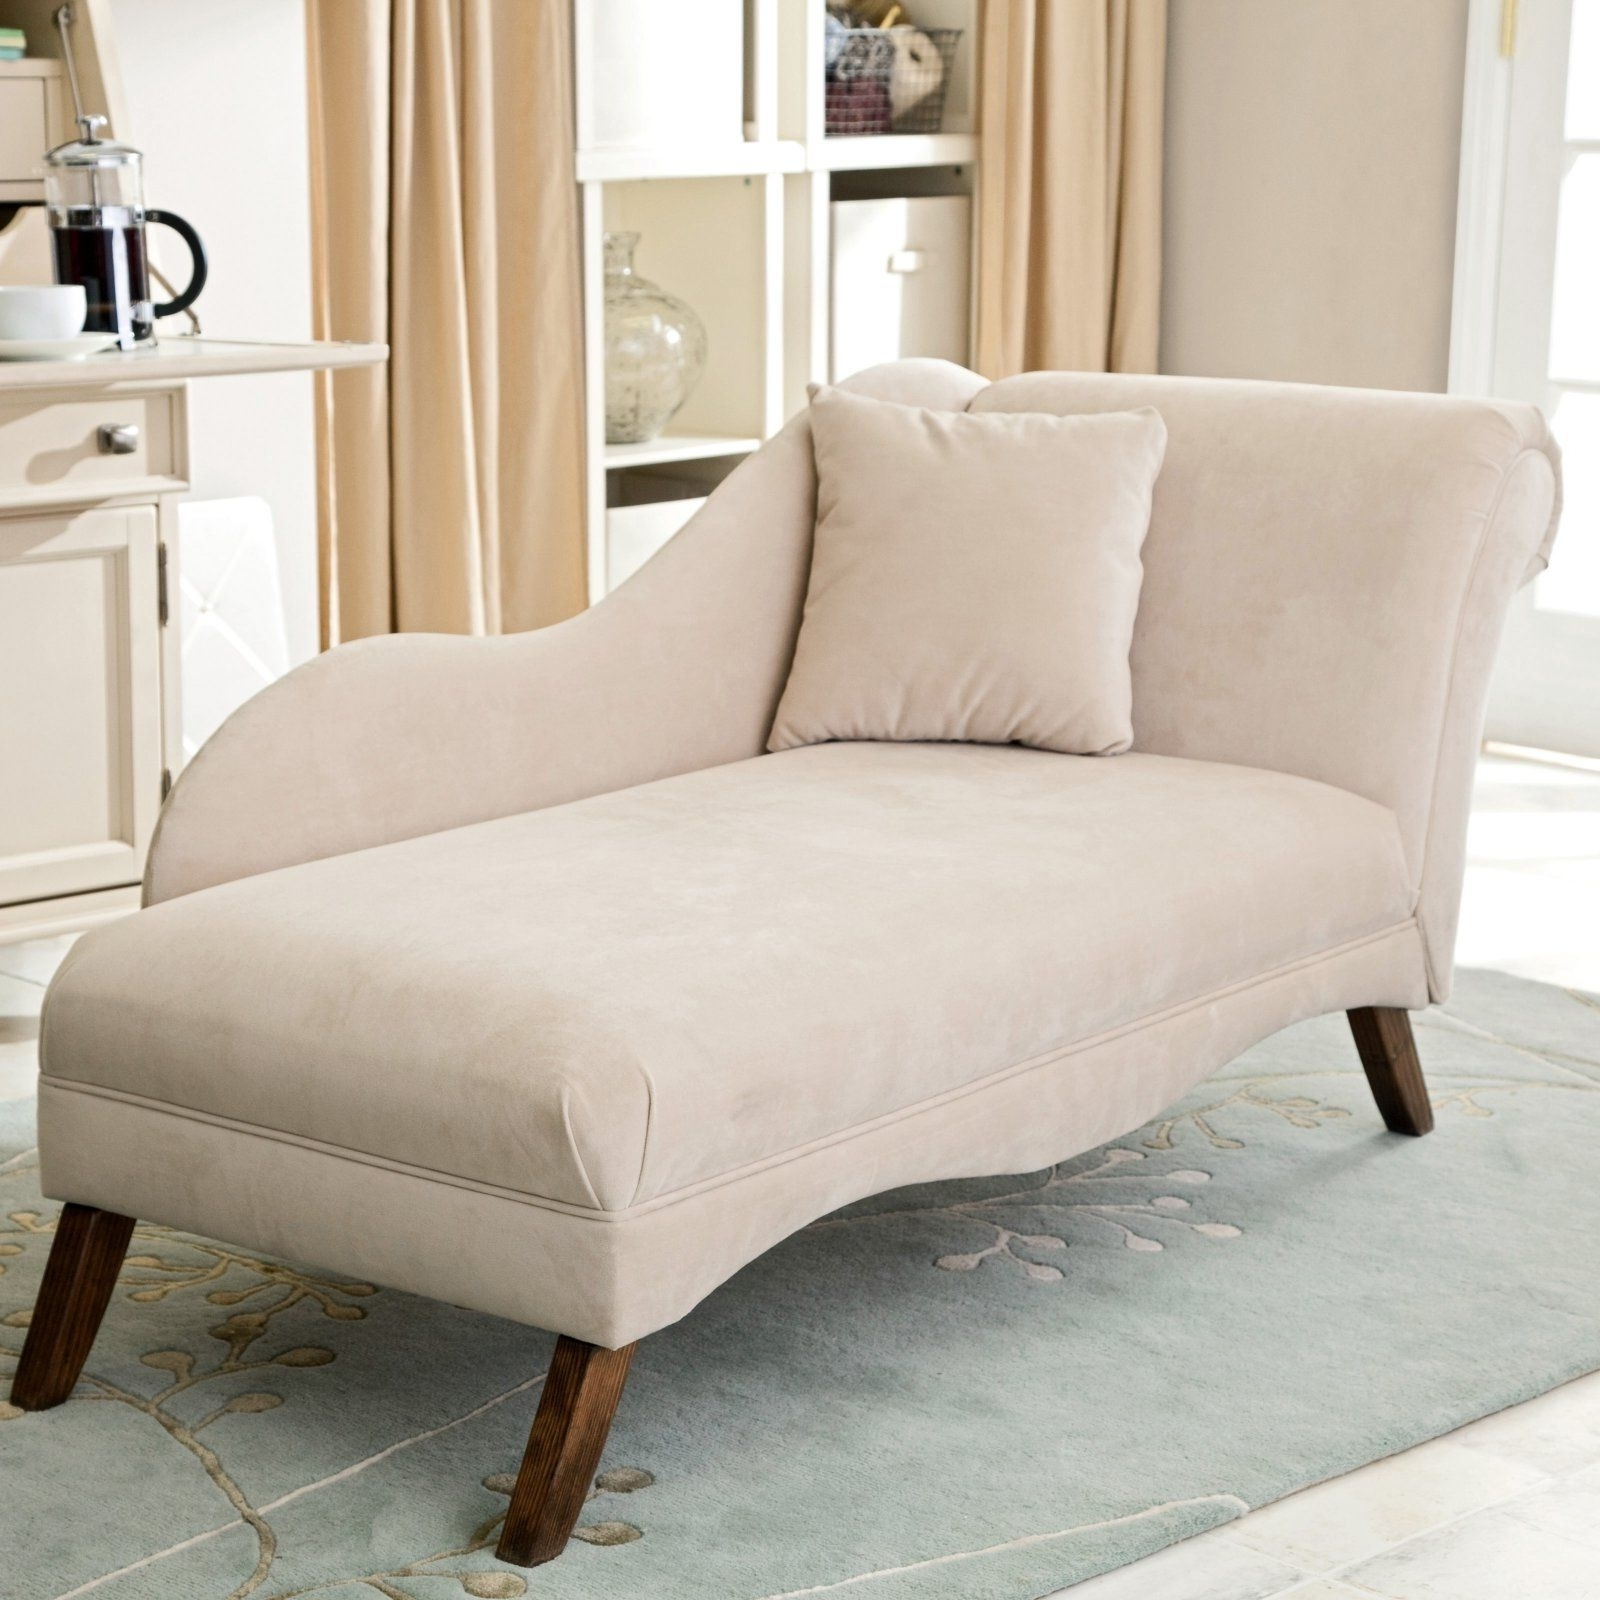 Trendy Cream Chaise Lounges Pertaining To Convertible Chair : Cream Chaise Longue Chaise Lounge Ikea Ivory (View 12 of 15)